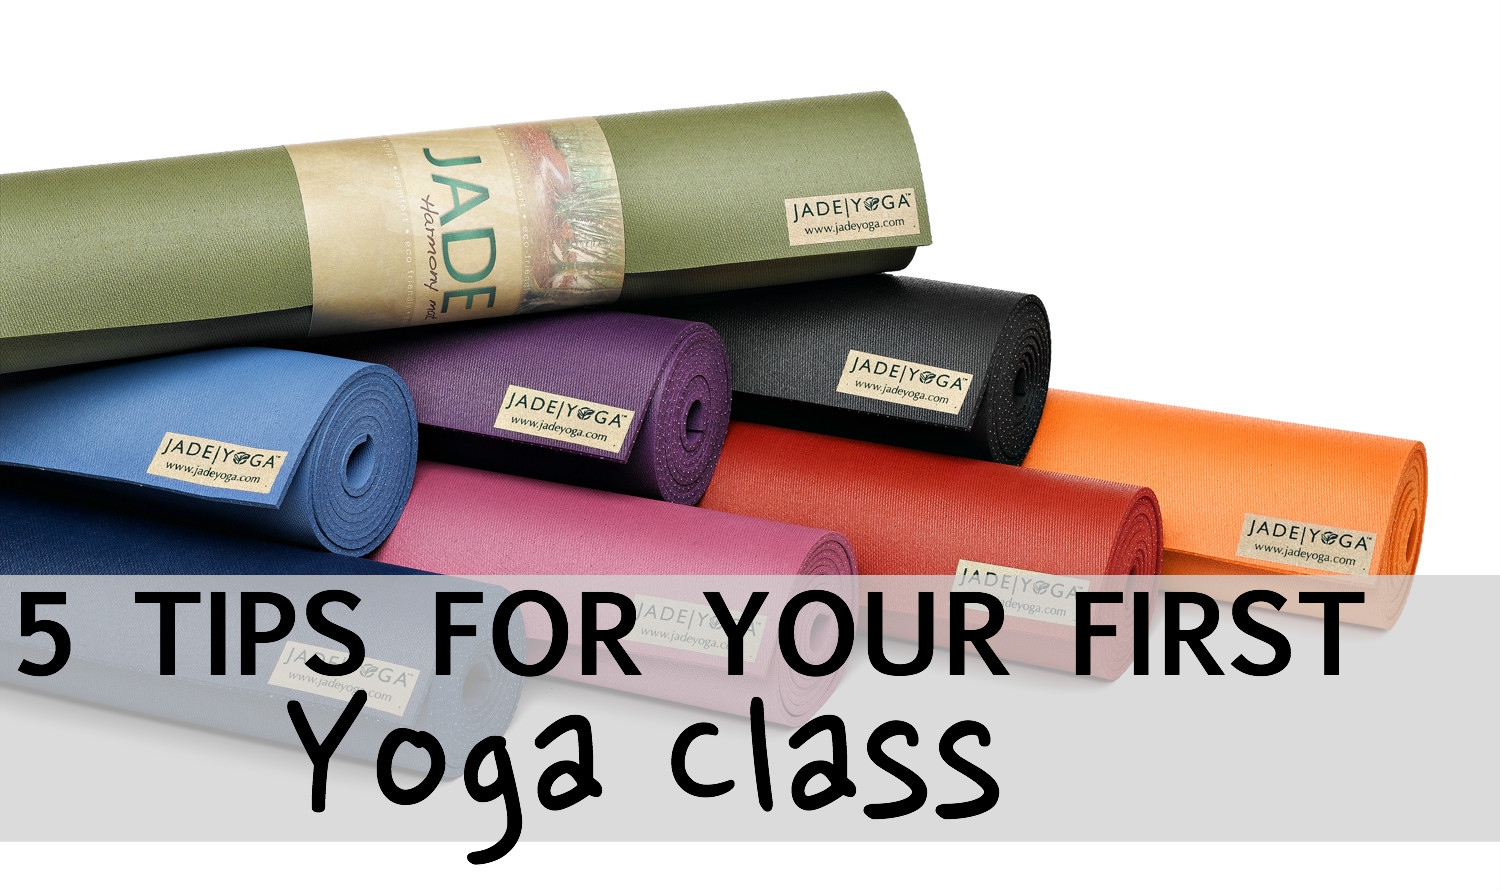 5 Tips for your first yoga class